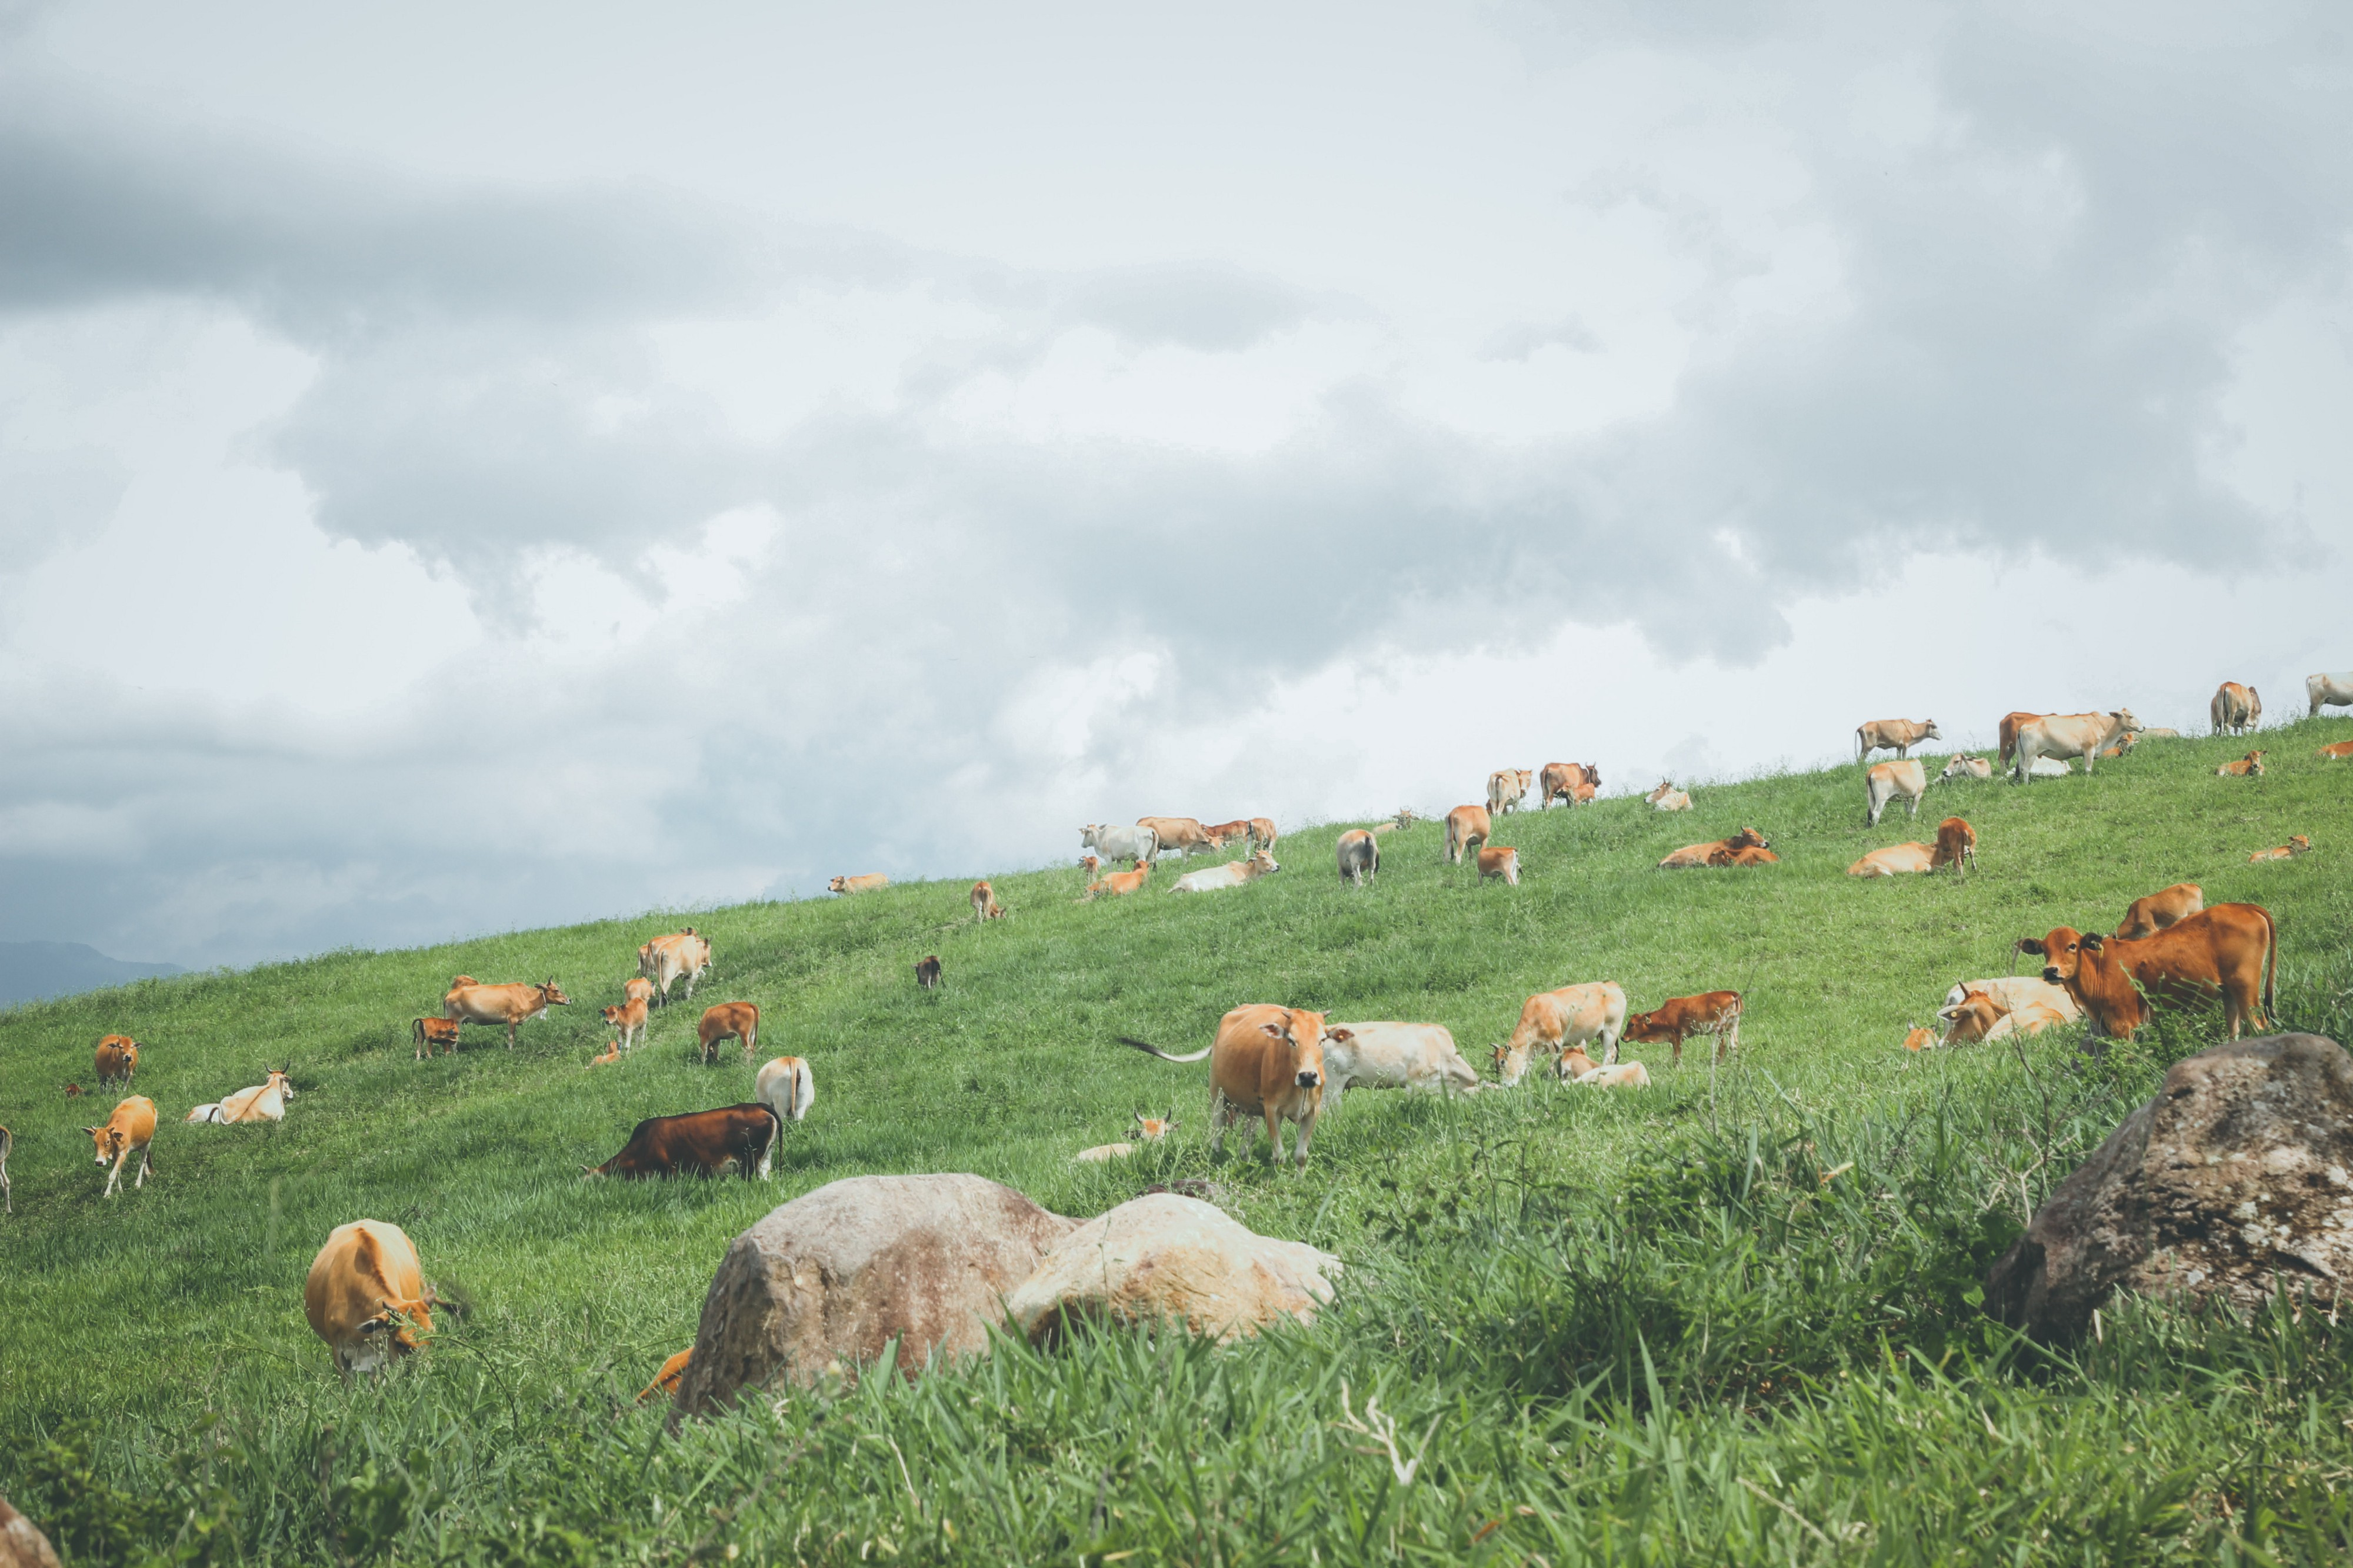 Brown and white cattle grazing in the long grass on a lush hillside on a cloudy day.